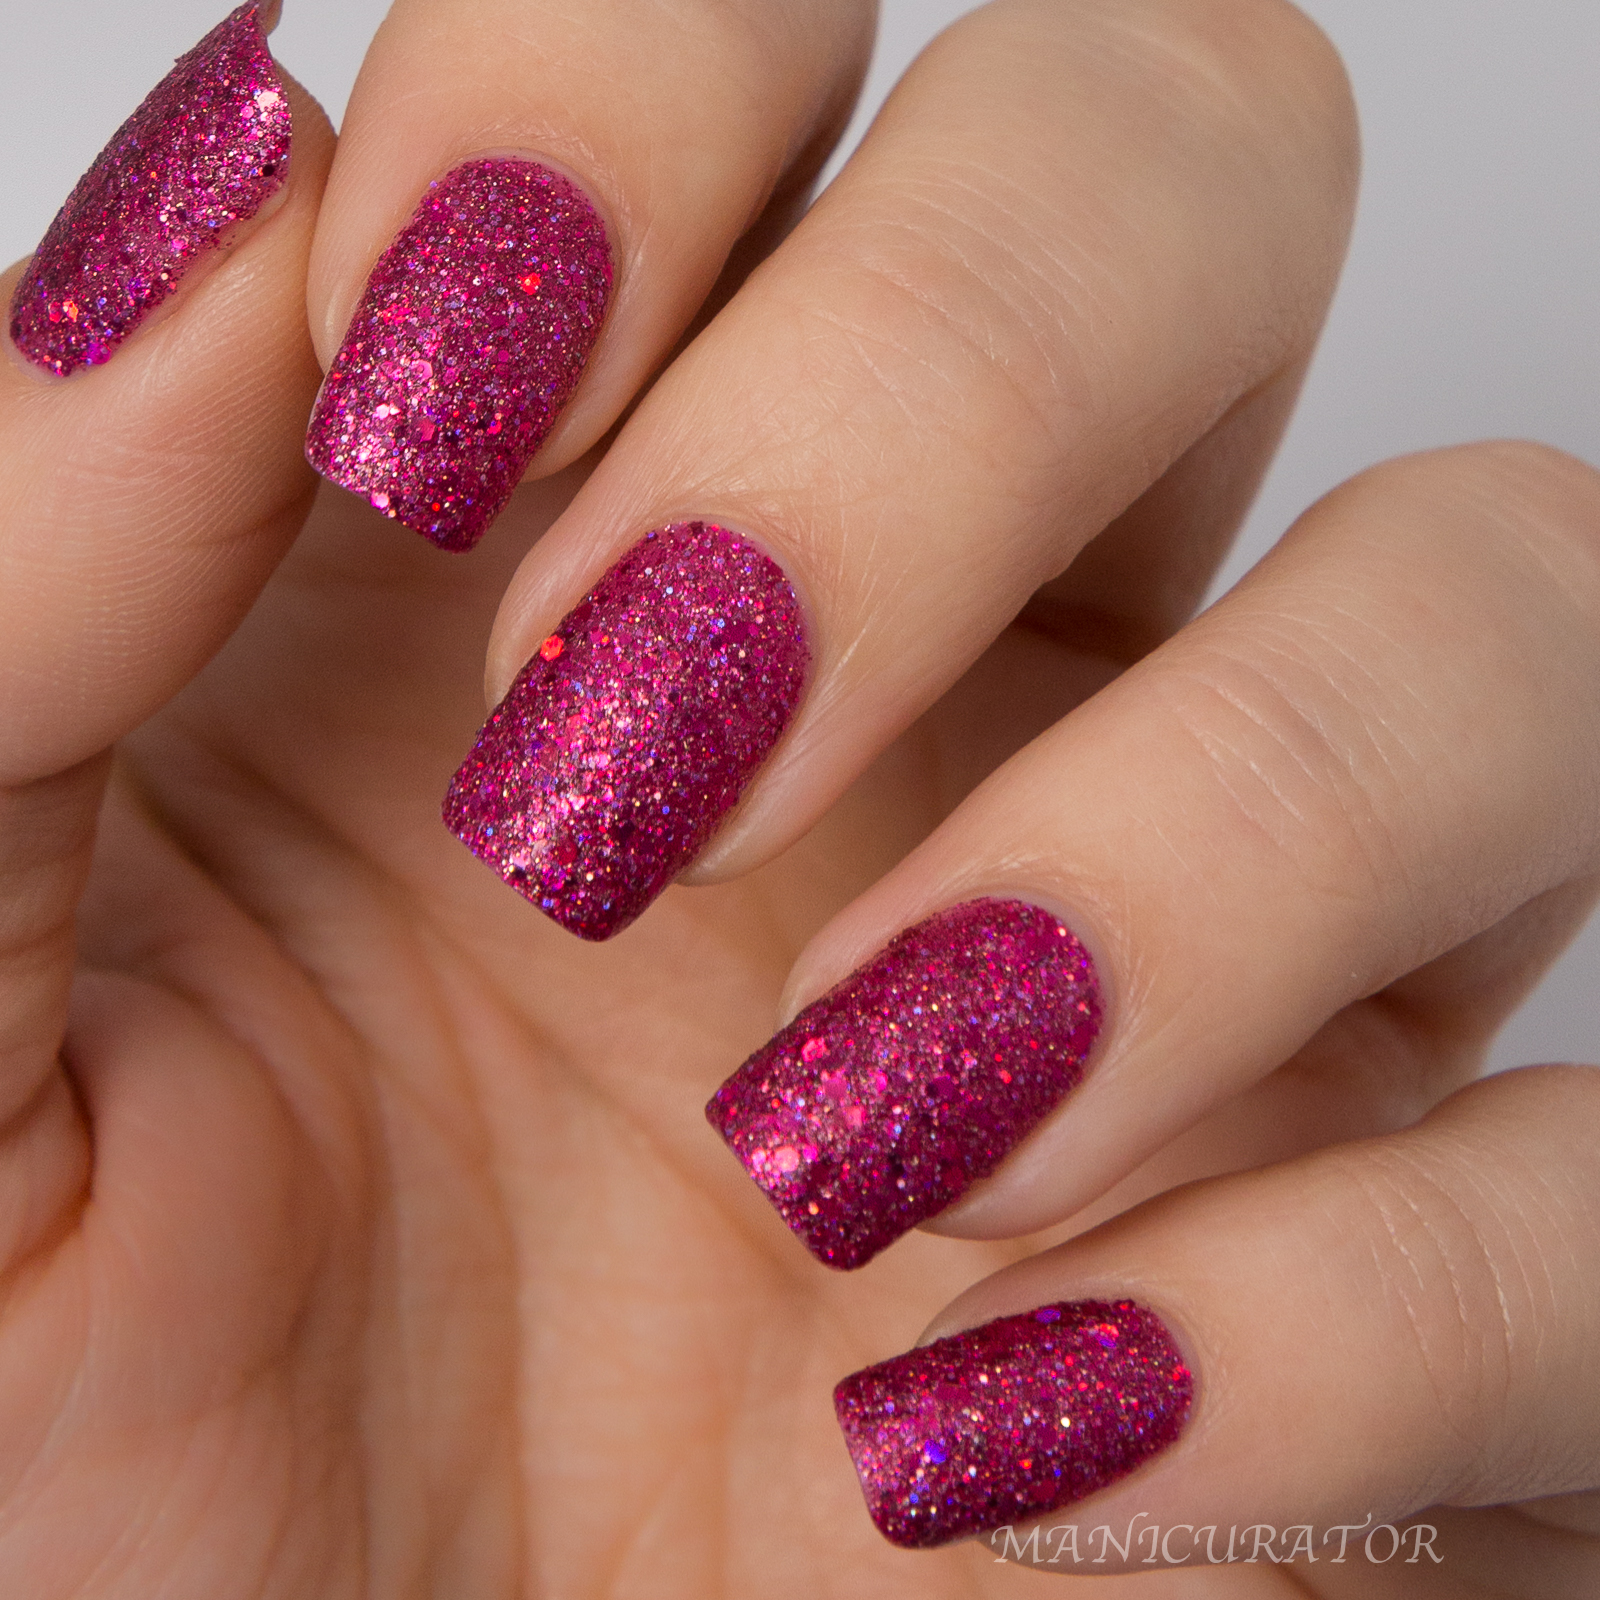 KBShimmer-Winter-2014-Turnip-The-Beet-Texture-Swatch